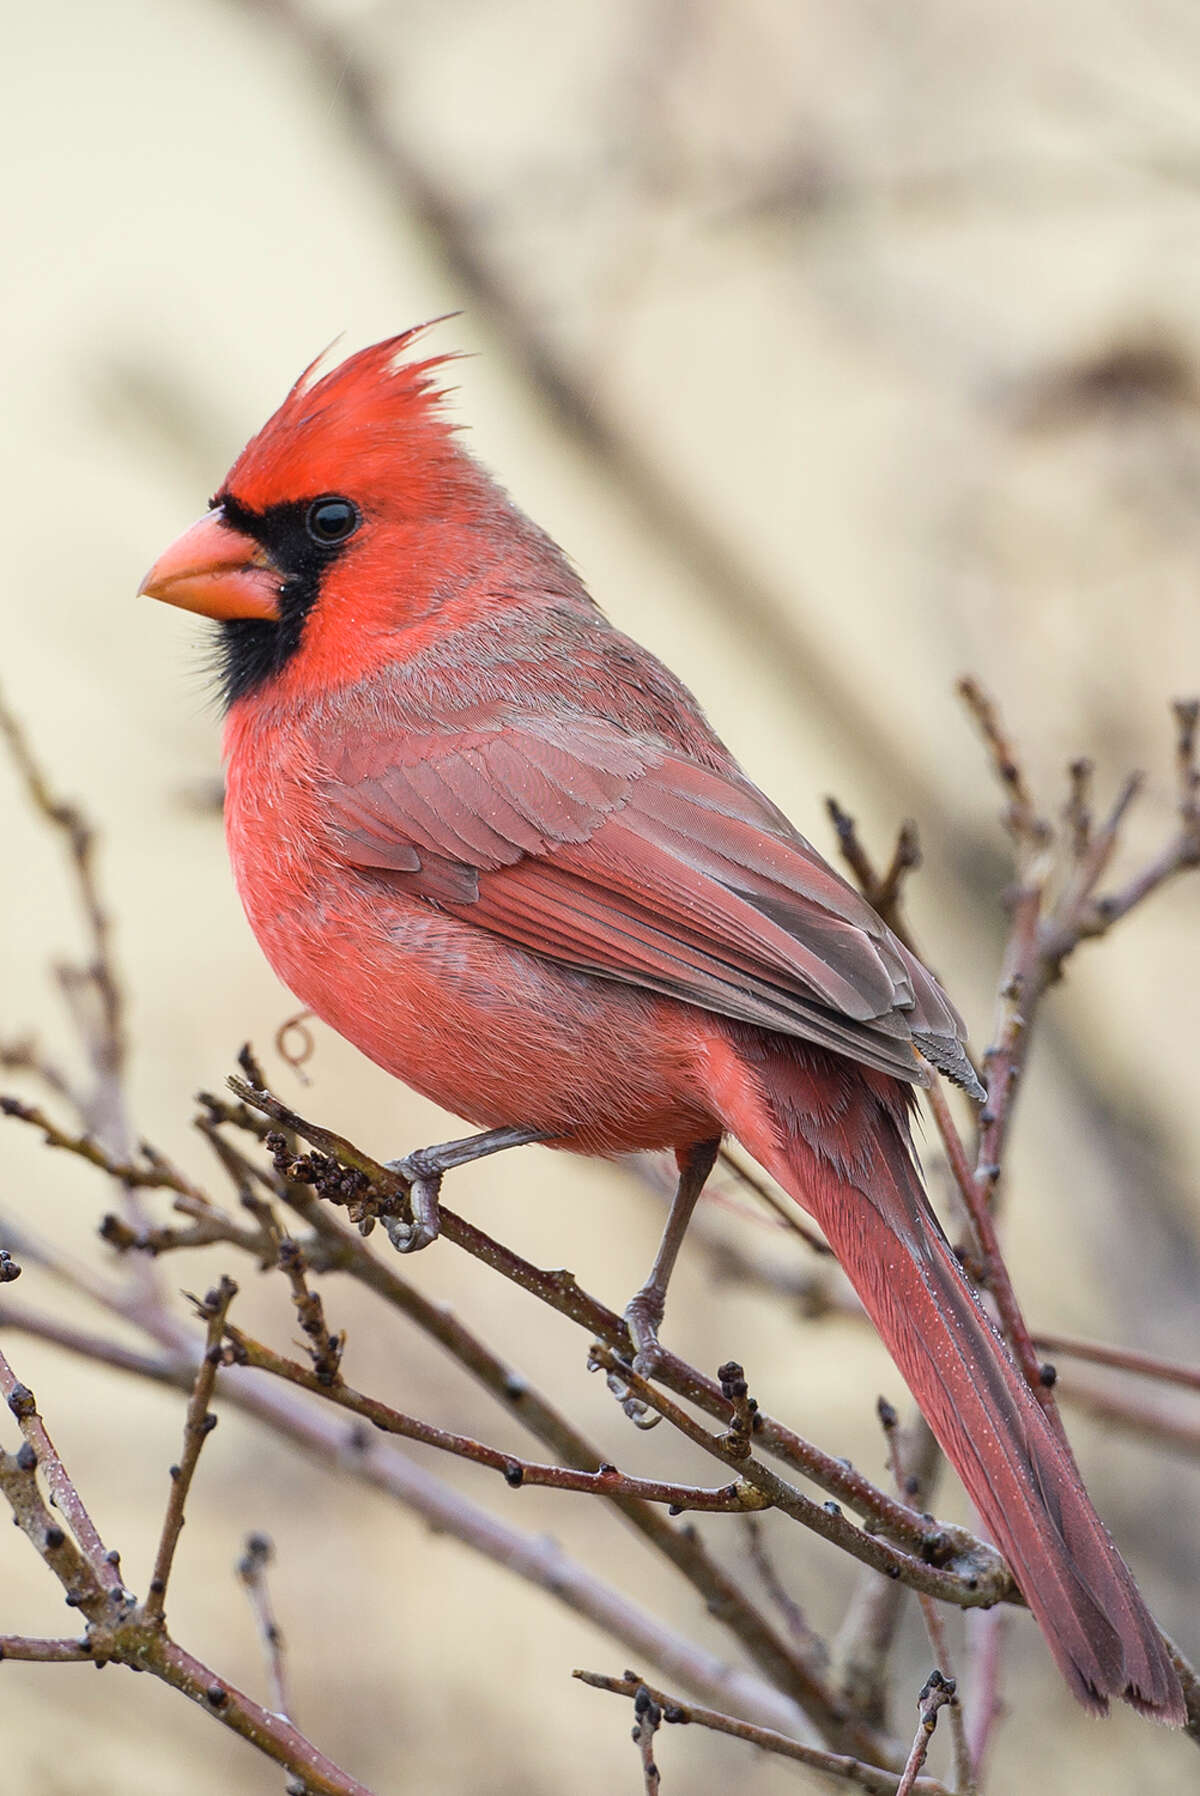 Northern cardinals don't migrate.